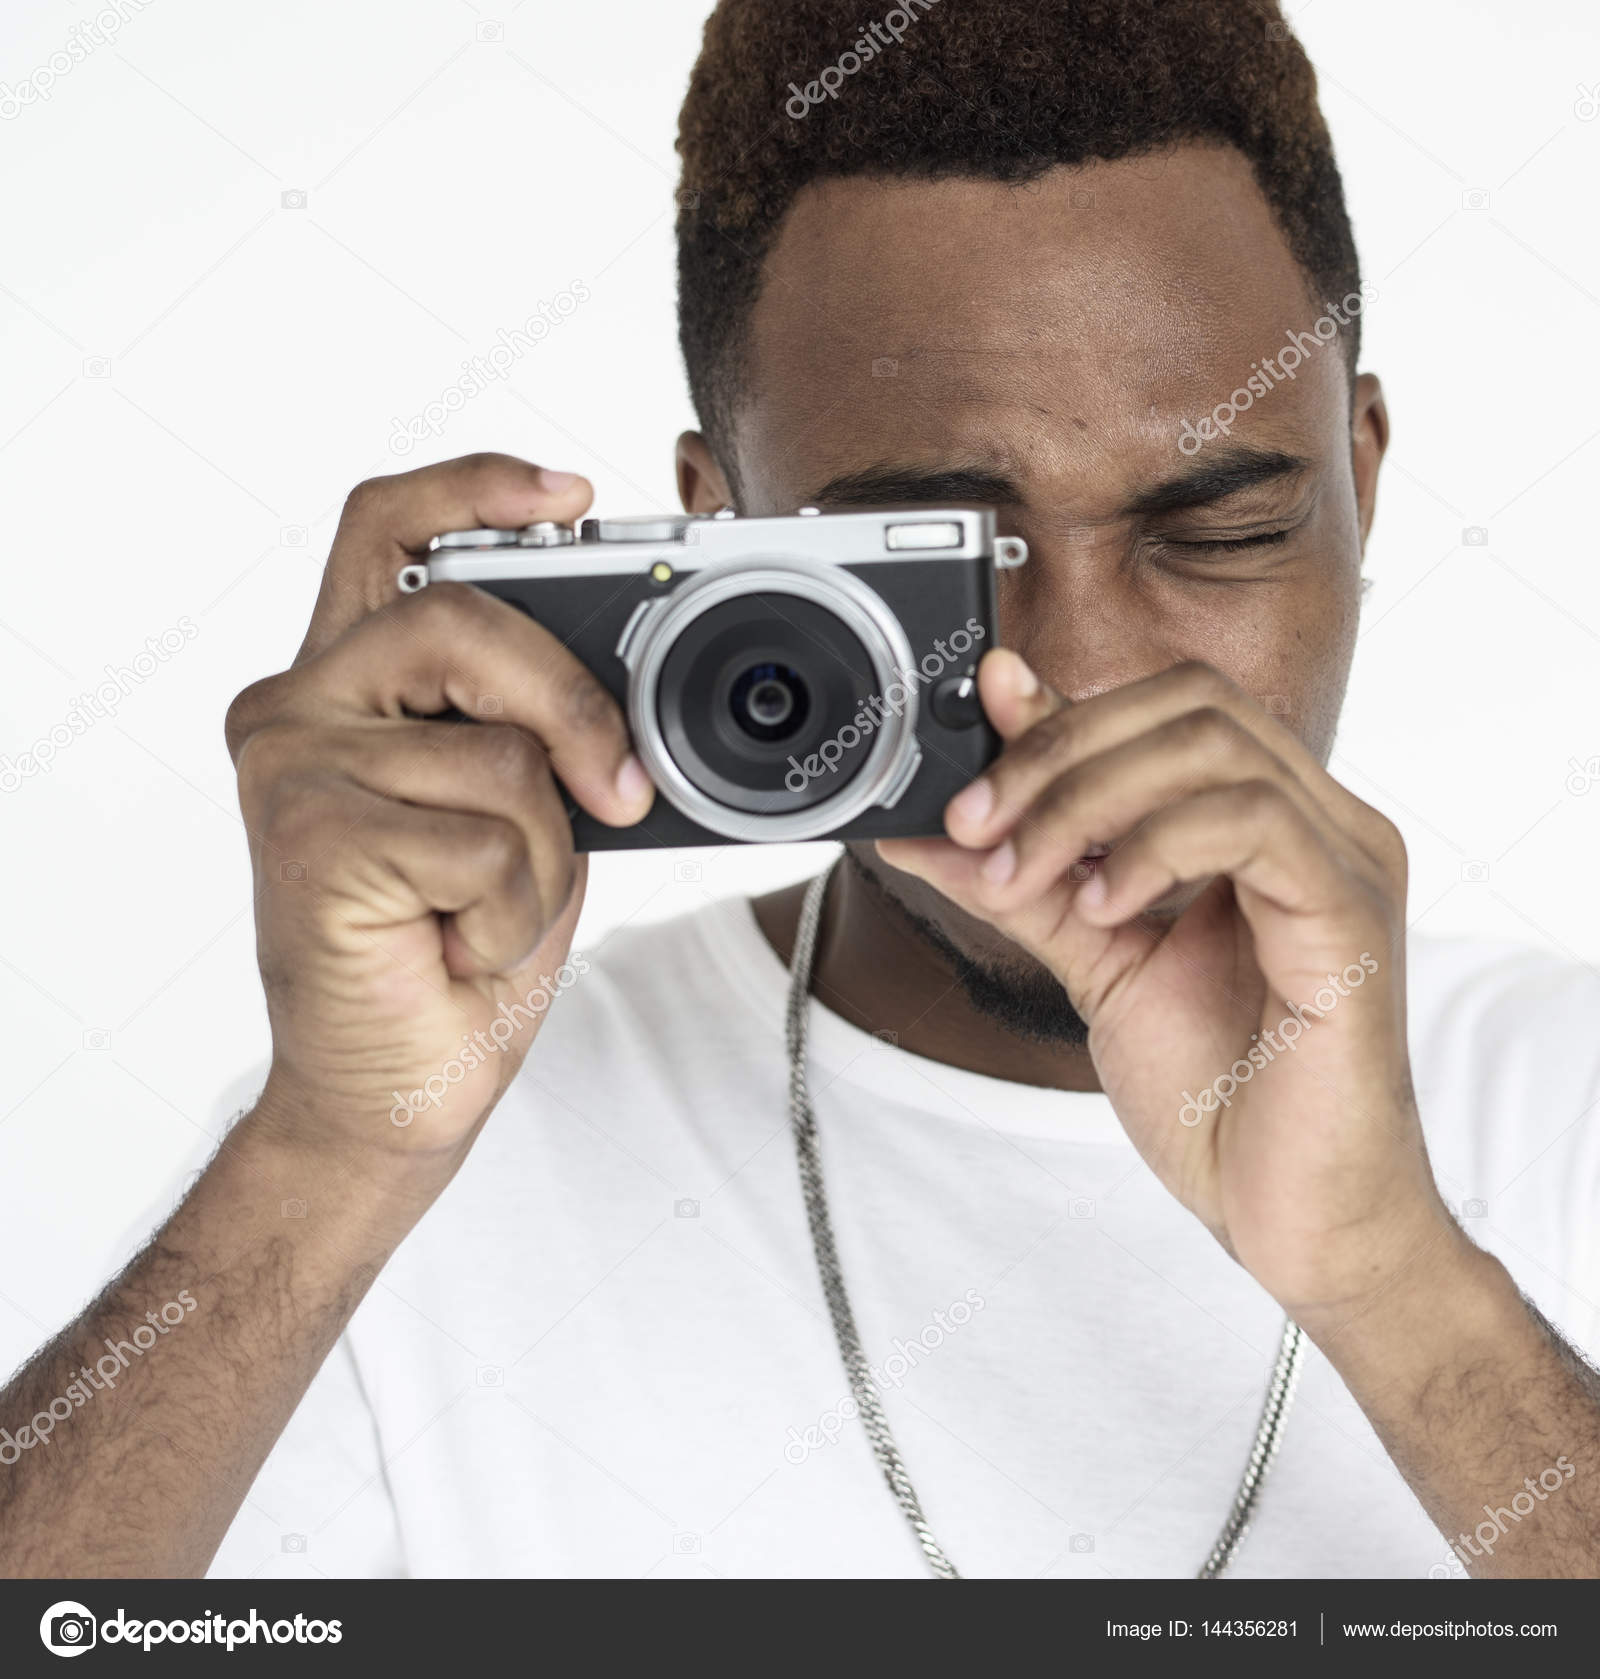 young African man with camera — Stock Photo © Rawpixel #144356281